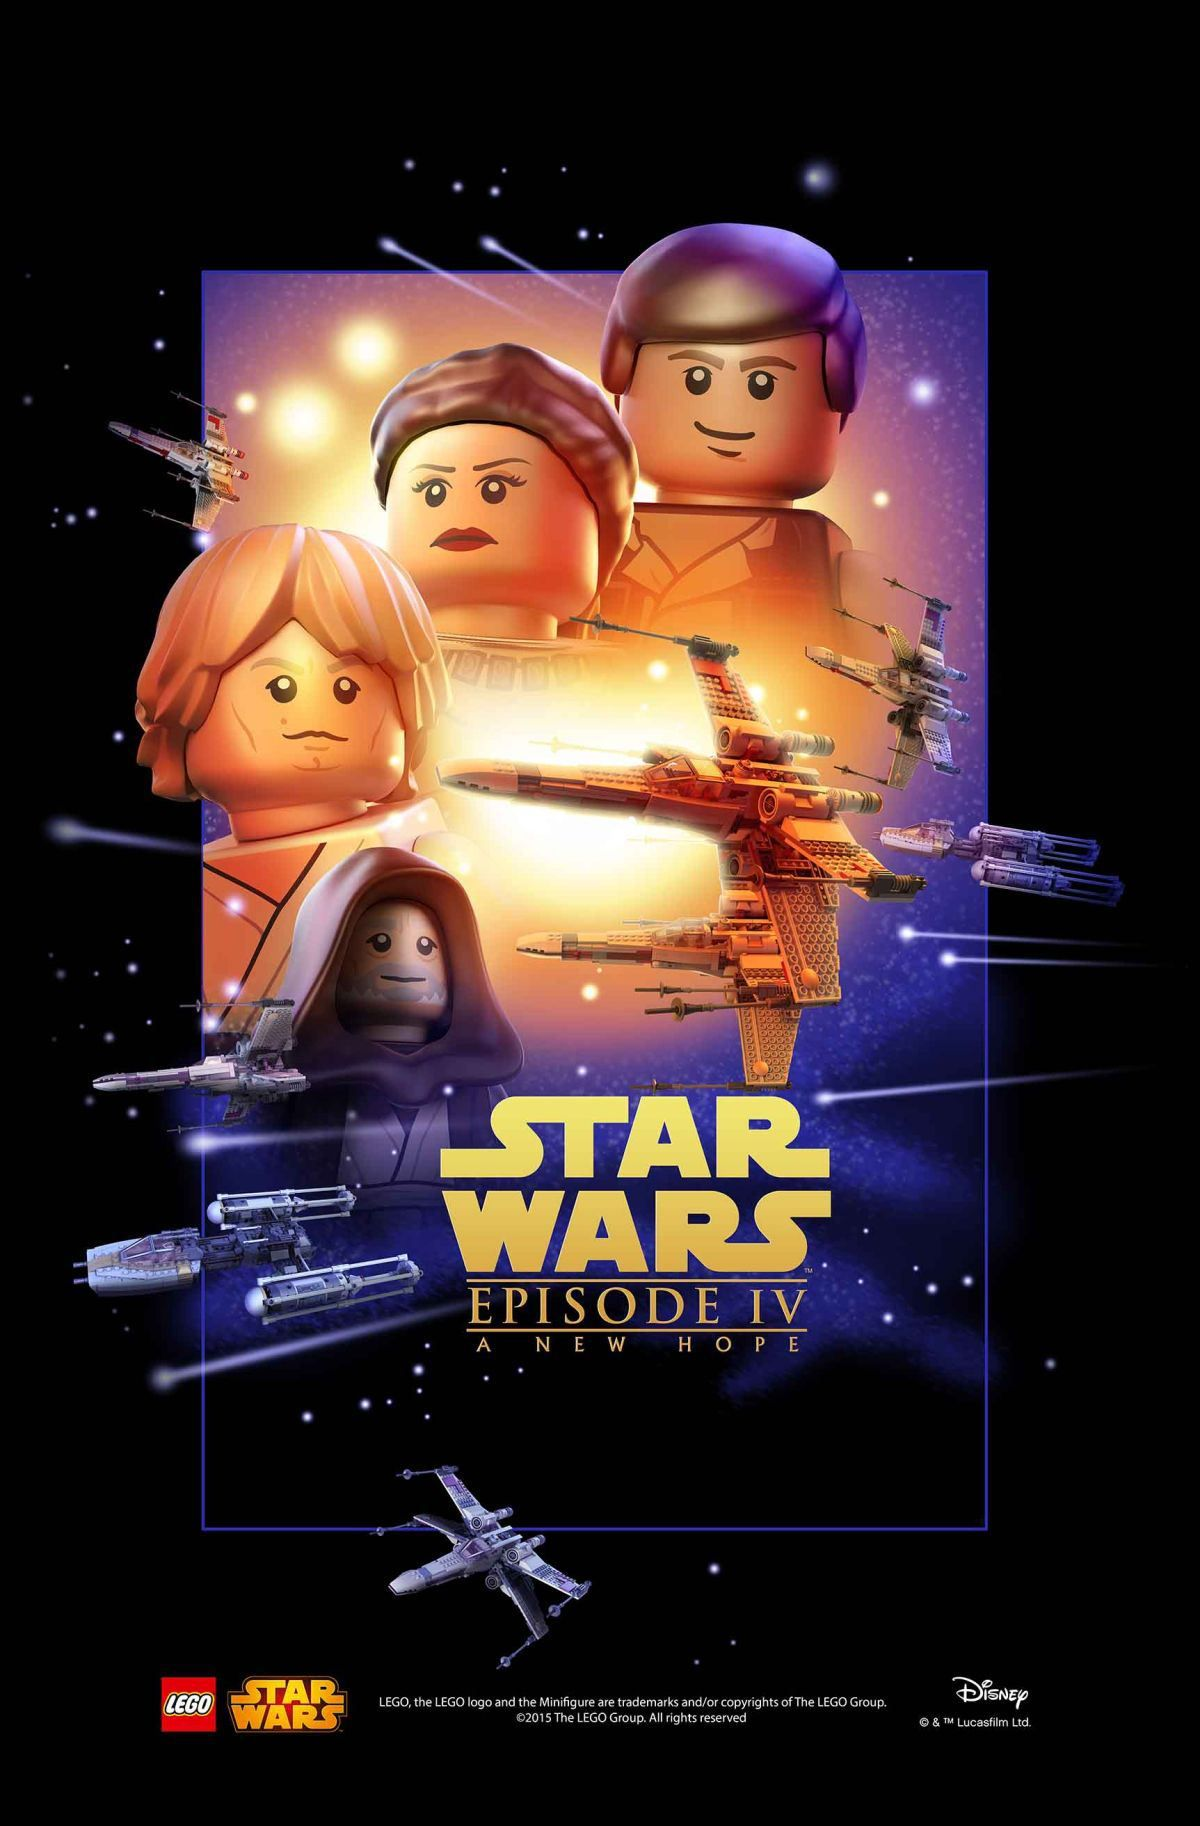 Each Month Since May 2015 Lego Store Has Released A Poster For All 6 Star Wars Episodes We Jus Star Wars Movies Posters Star Wars Poster Star Wars Episode Iv